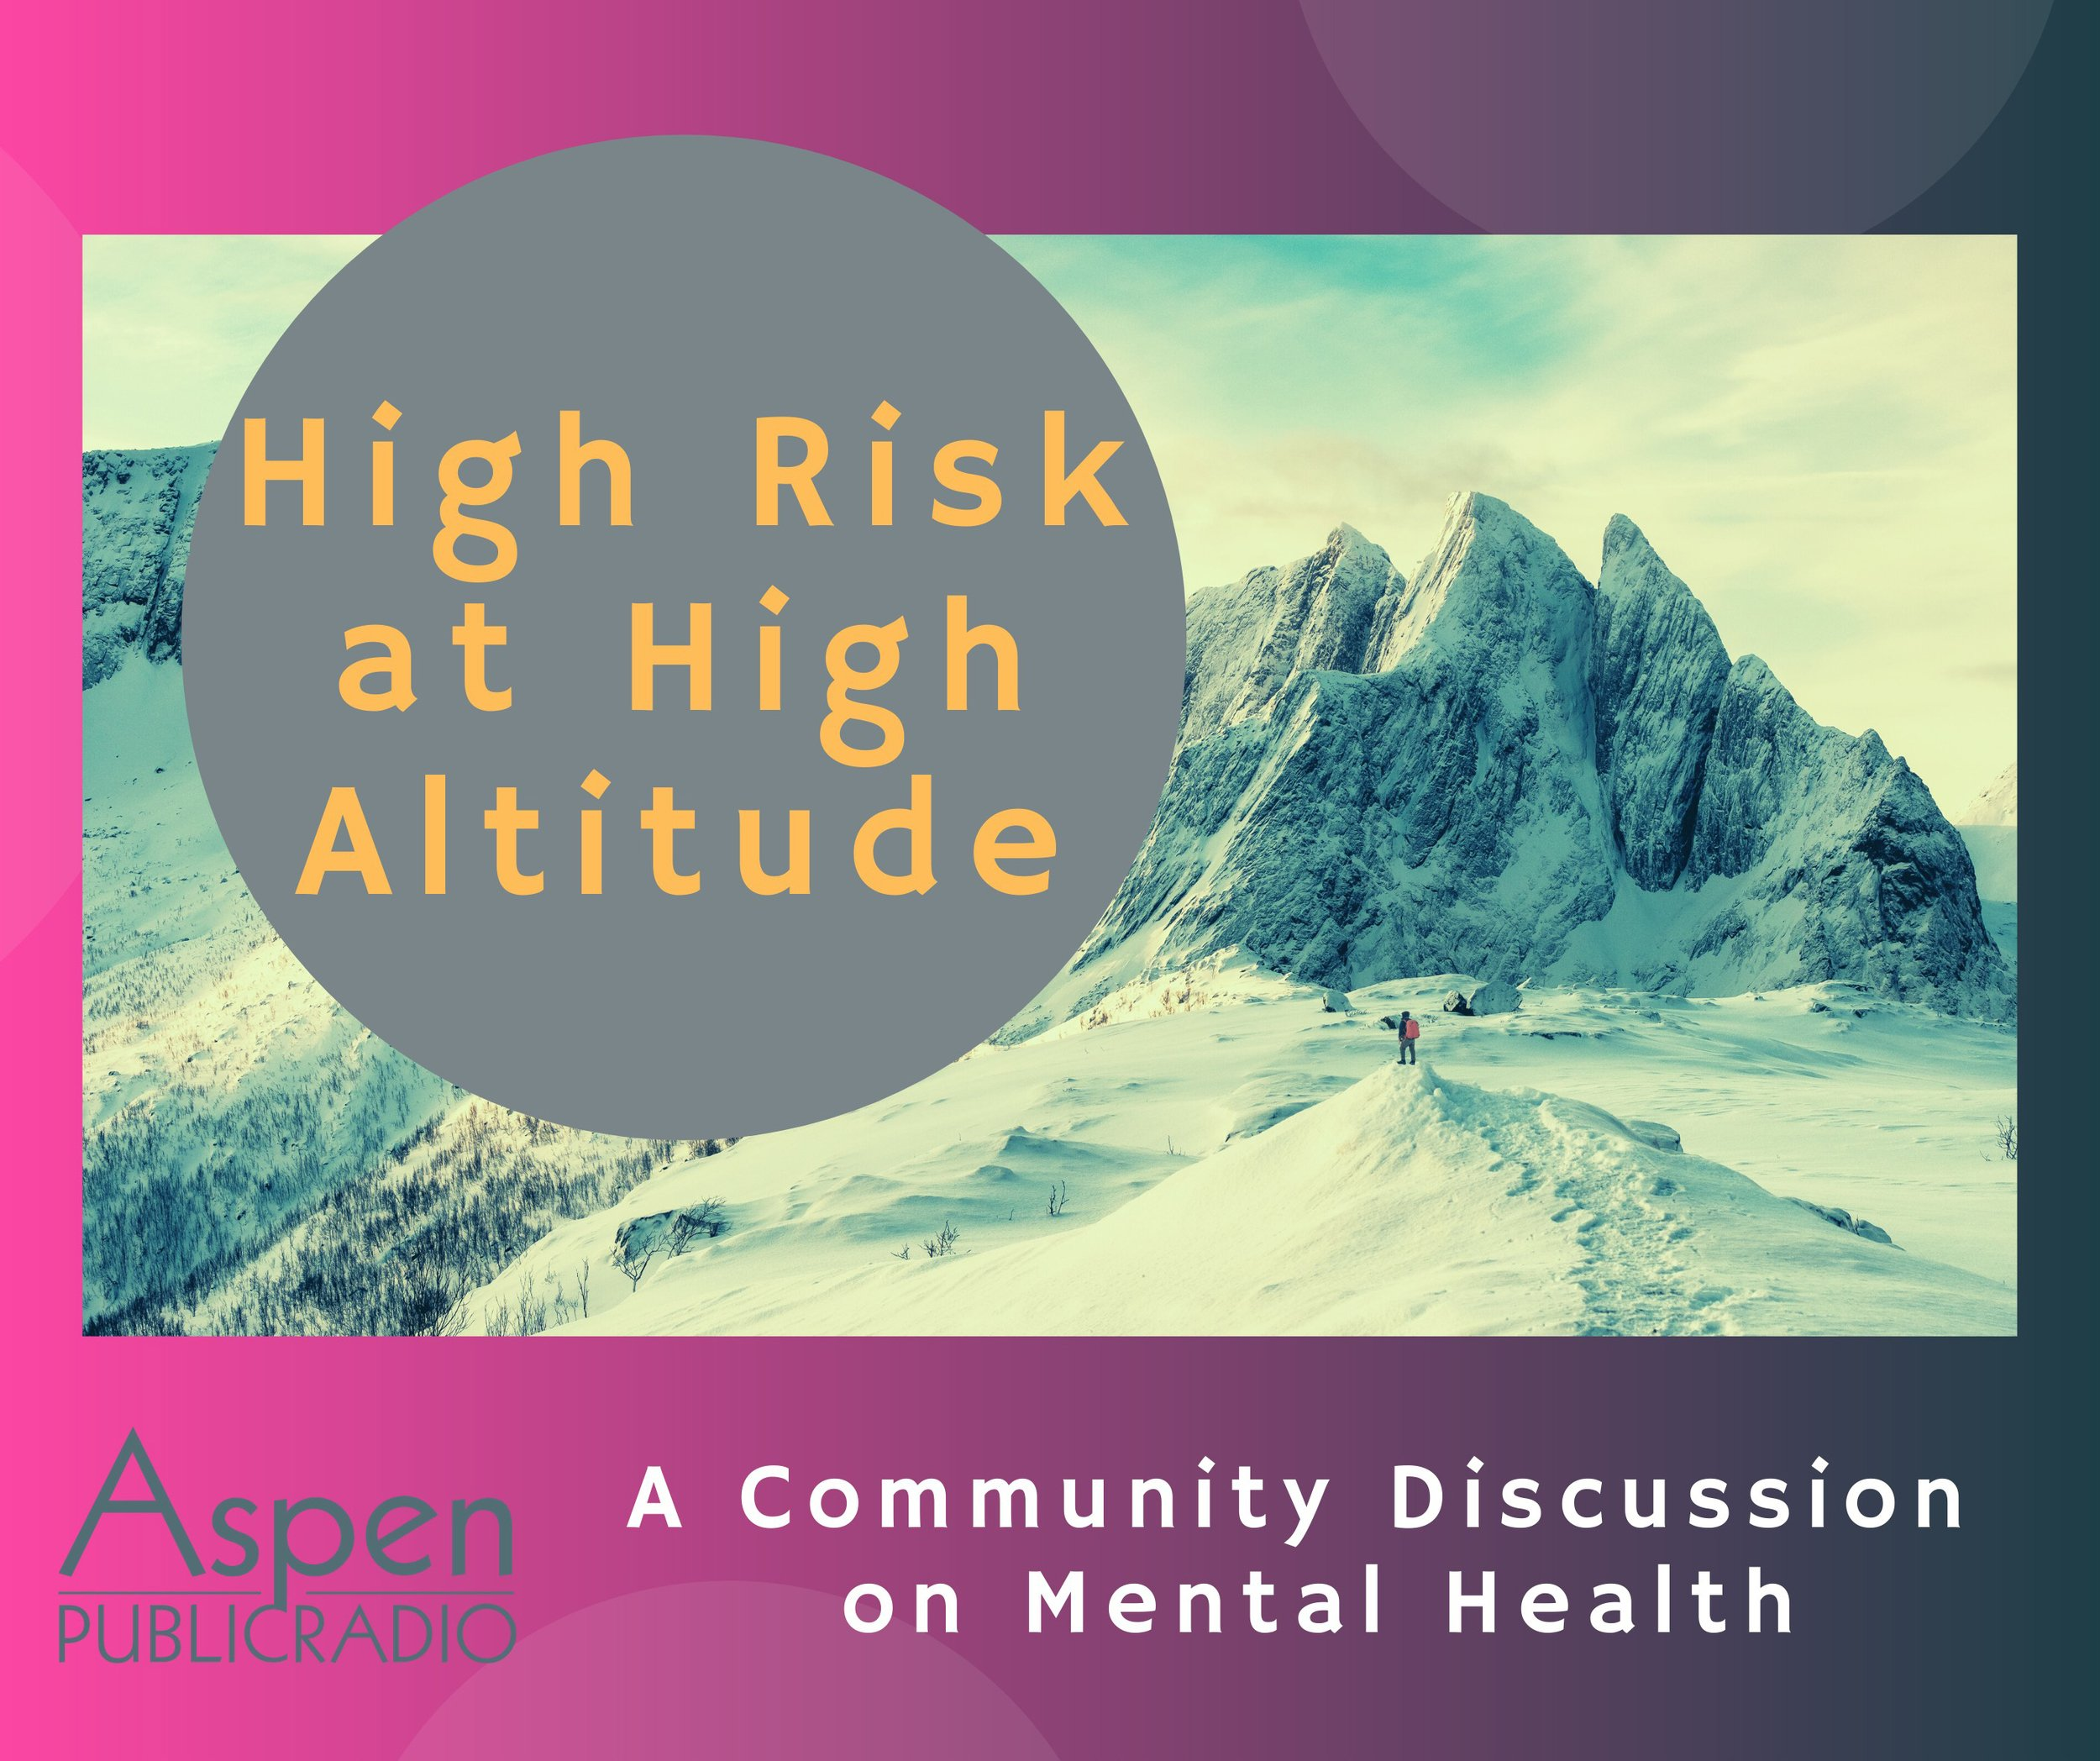 Ariel Van Cleave, news director at APR, launched High Risk at High Altitude on Dec. 1 - a program dedicated to discussing mental wellness in the Roaring Fork Valley. Photo Credit: Lauri Jackson of APR